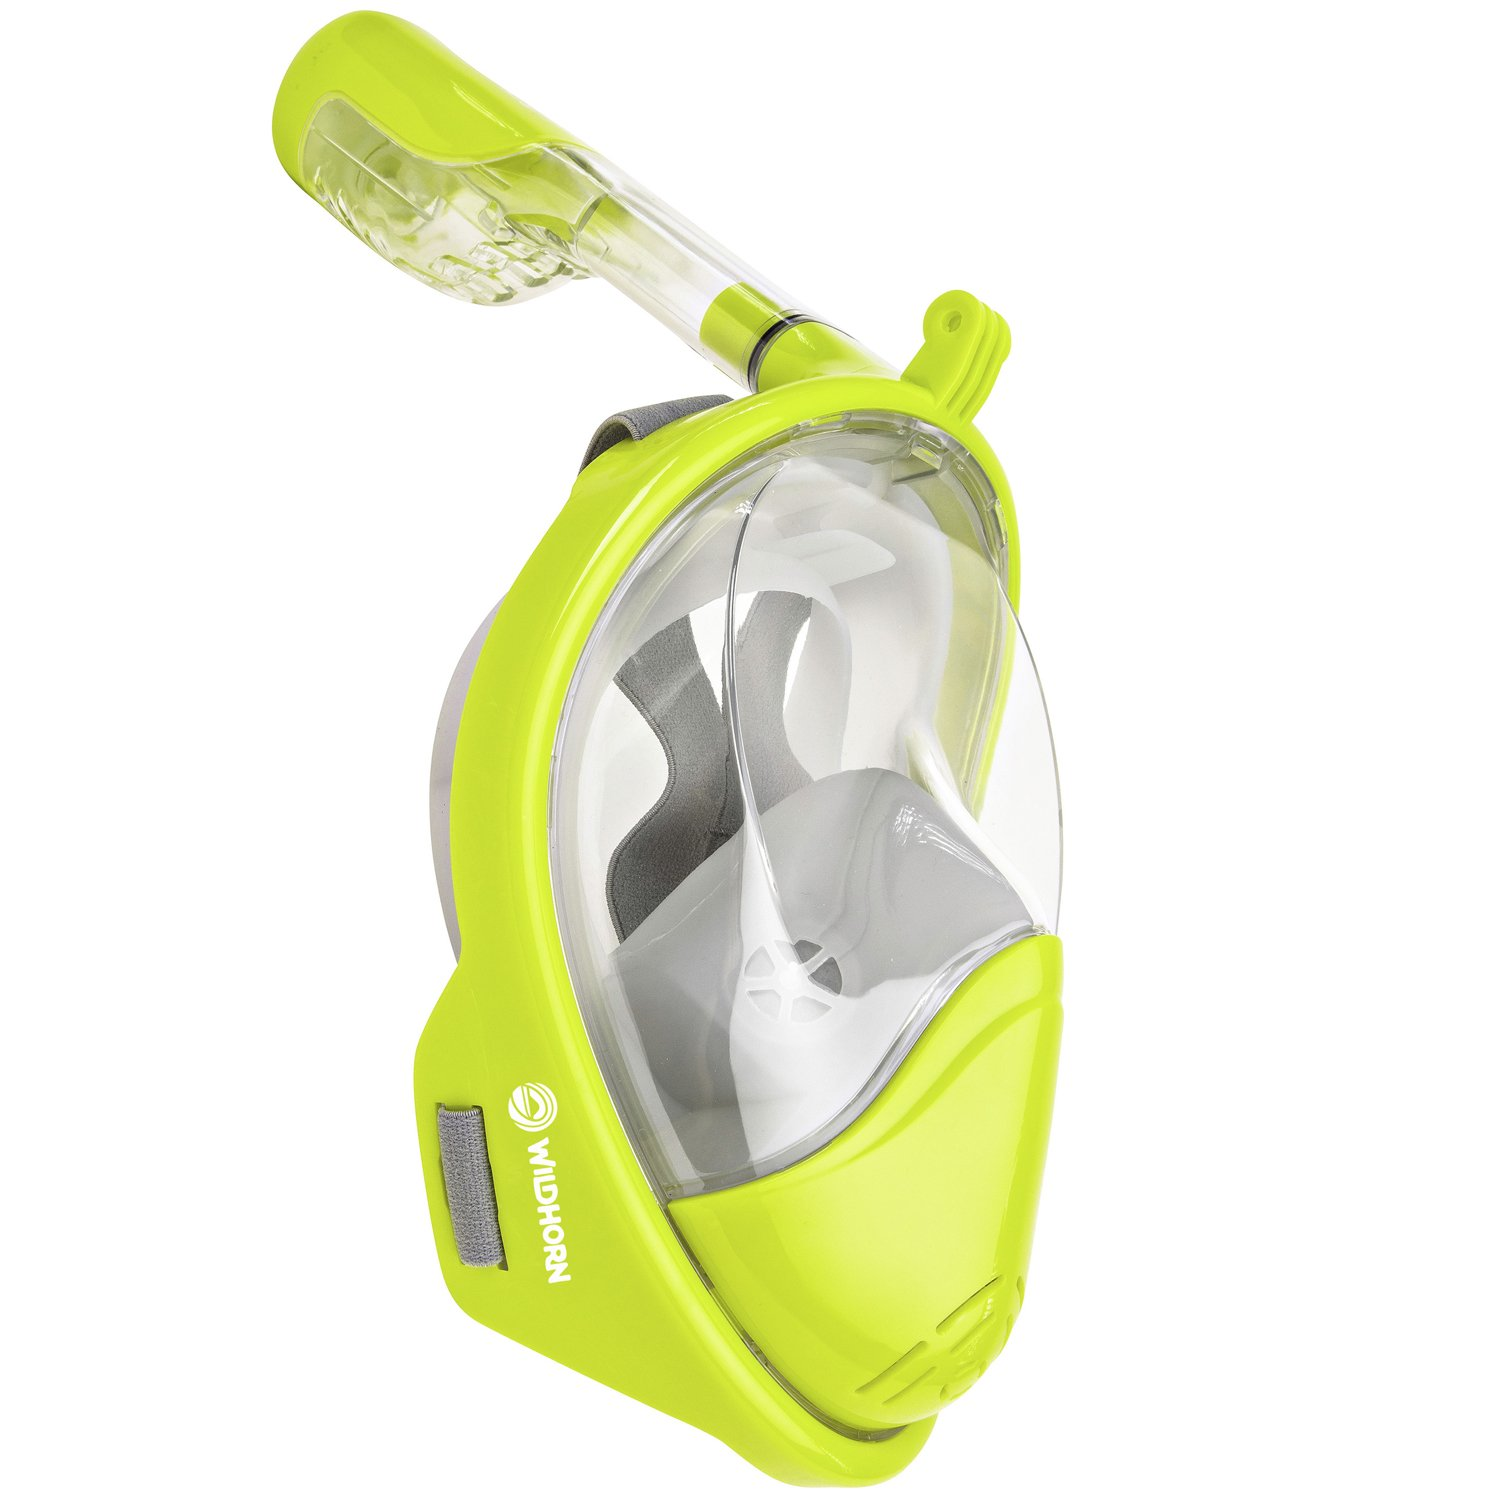 Seaview 180° GoPro Compatible Snorkel Mask- Panoramic Full Face Design. See More With Larger Viewing Area Than Traditional Masks. Prevents Gag Reflex with Tubeless Design (Electric, S/M) by WildHorn Outfitters (Image #1)